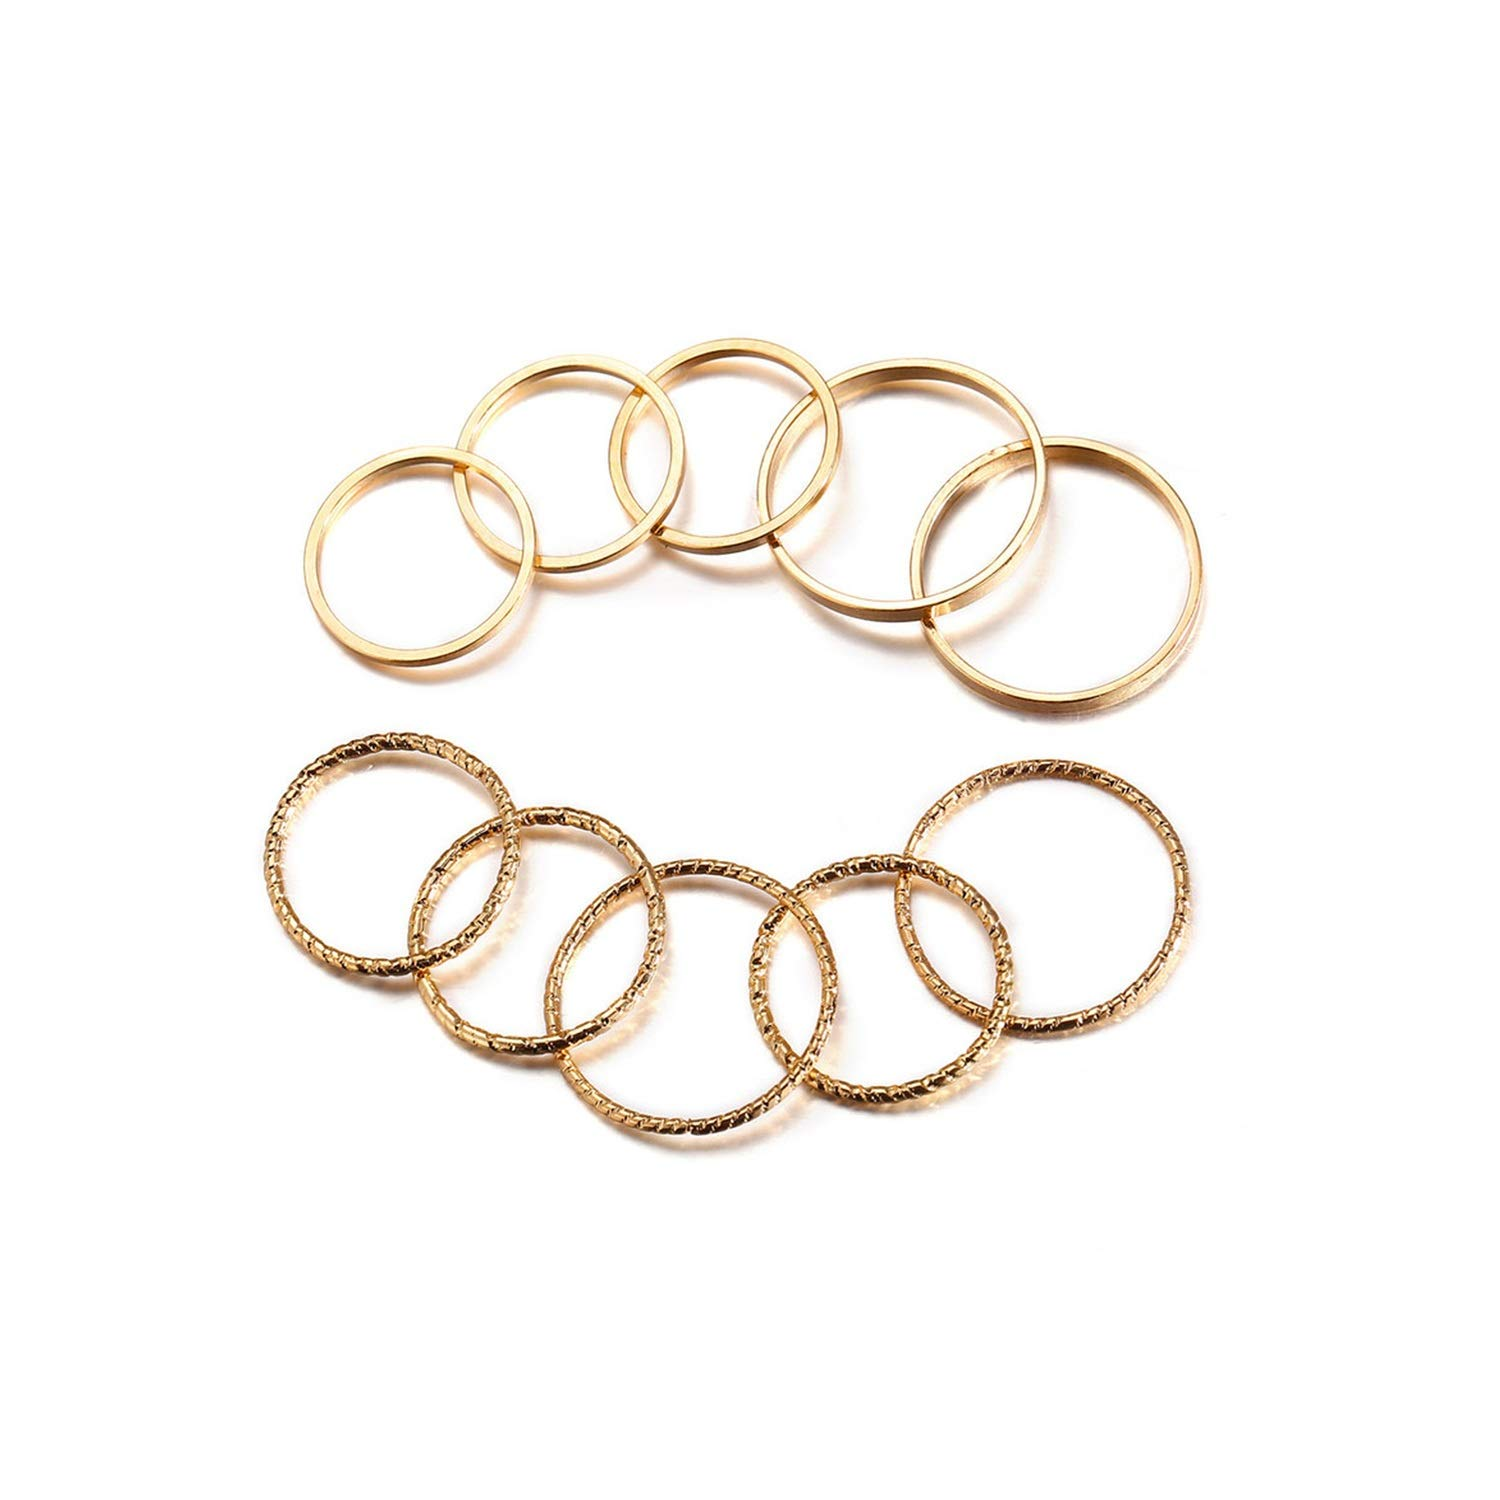 pretty-gentle52654 Vintage Gold Color Knuckle Rings Set for Women Geometric Round Twist Weave Finger Ring